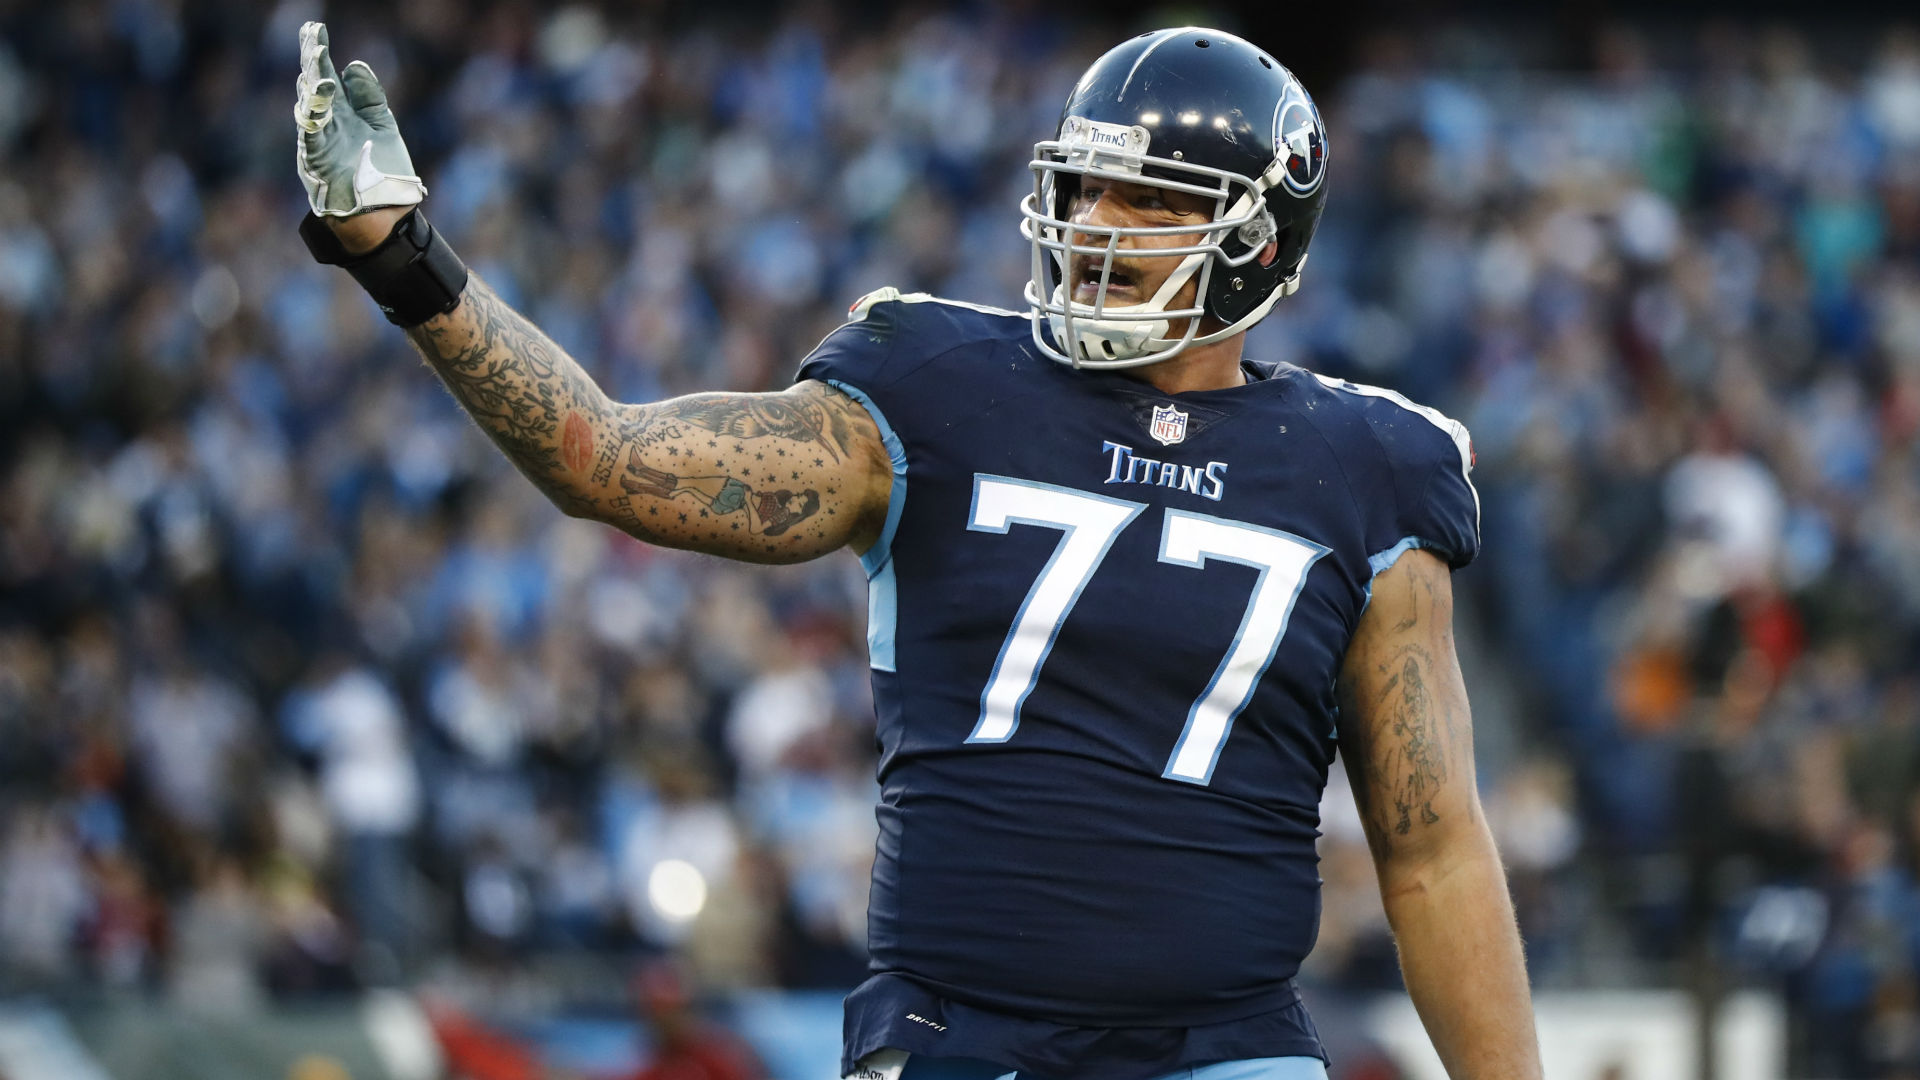 Titans tackle Taylor Lewan loses appeal, suspended 4 games for violating NFL's PED policy